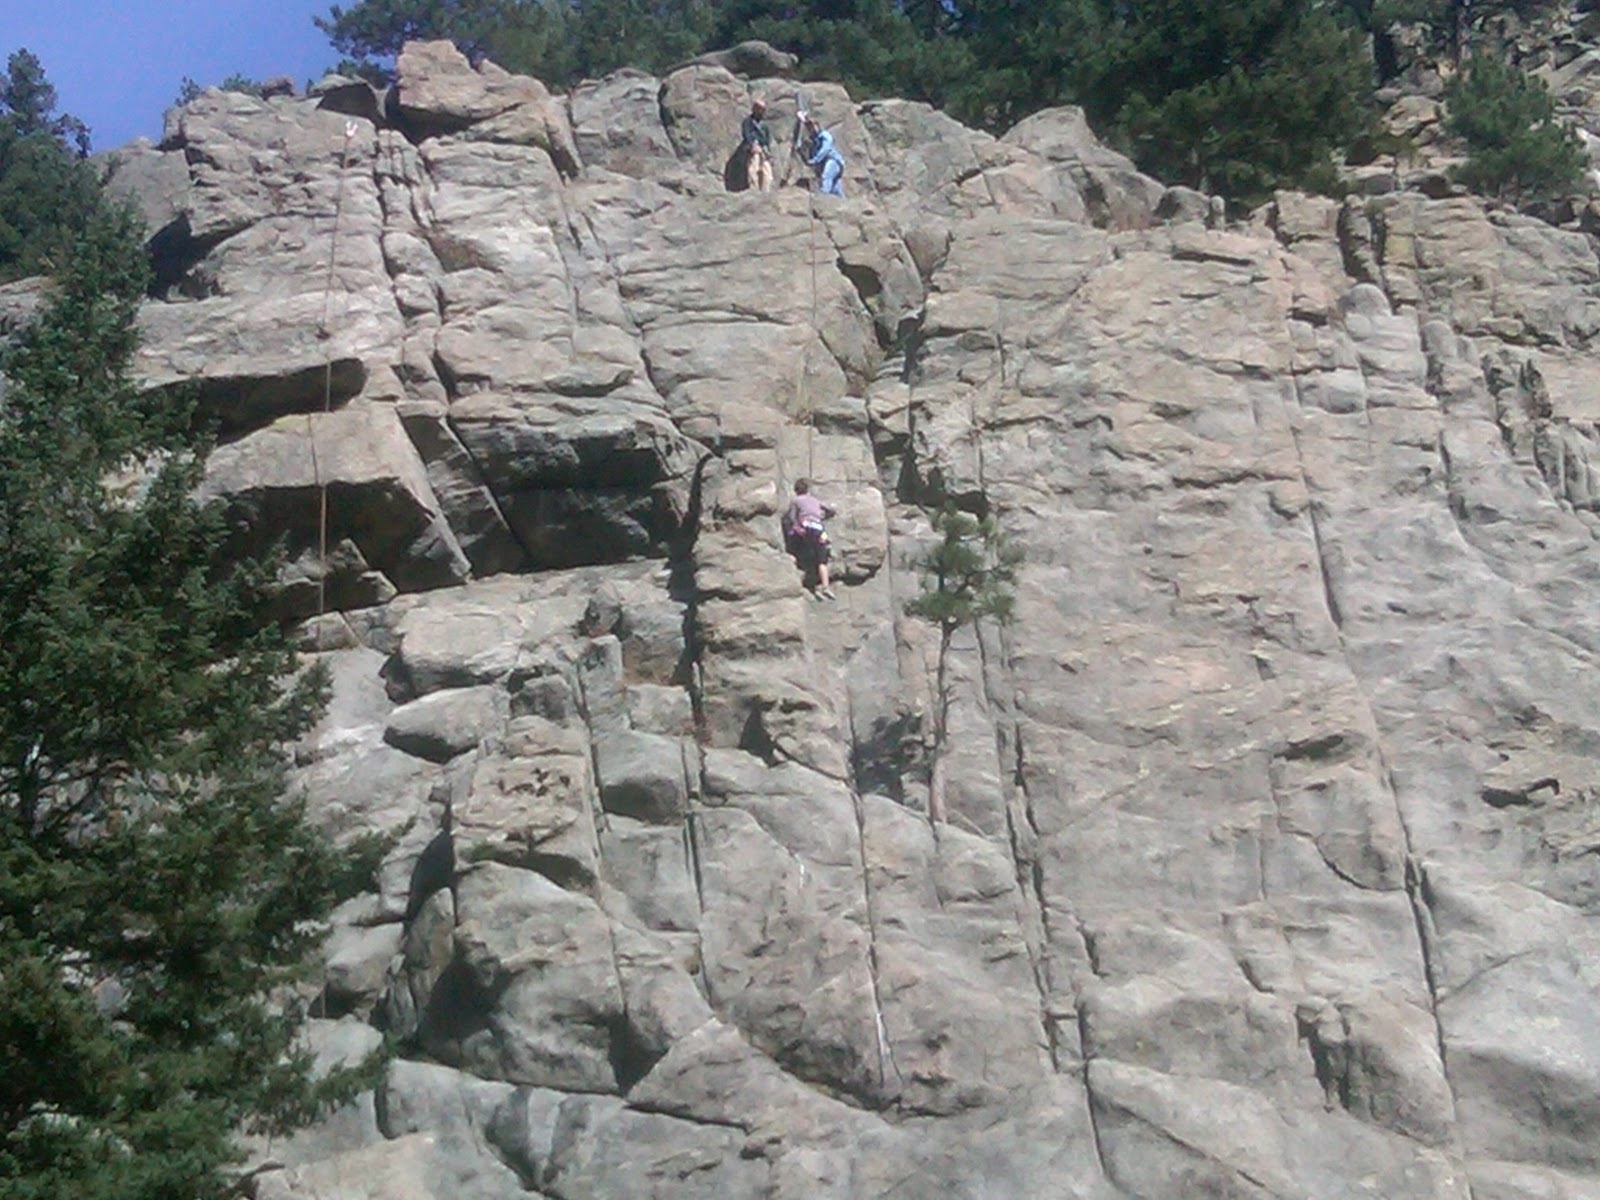 Mike Komadina and Dorian Smith: Nine rock climbing accidents in